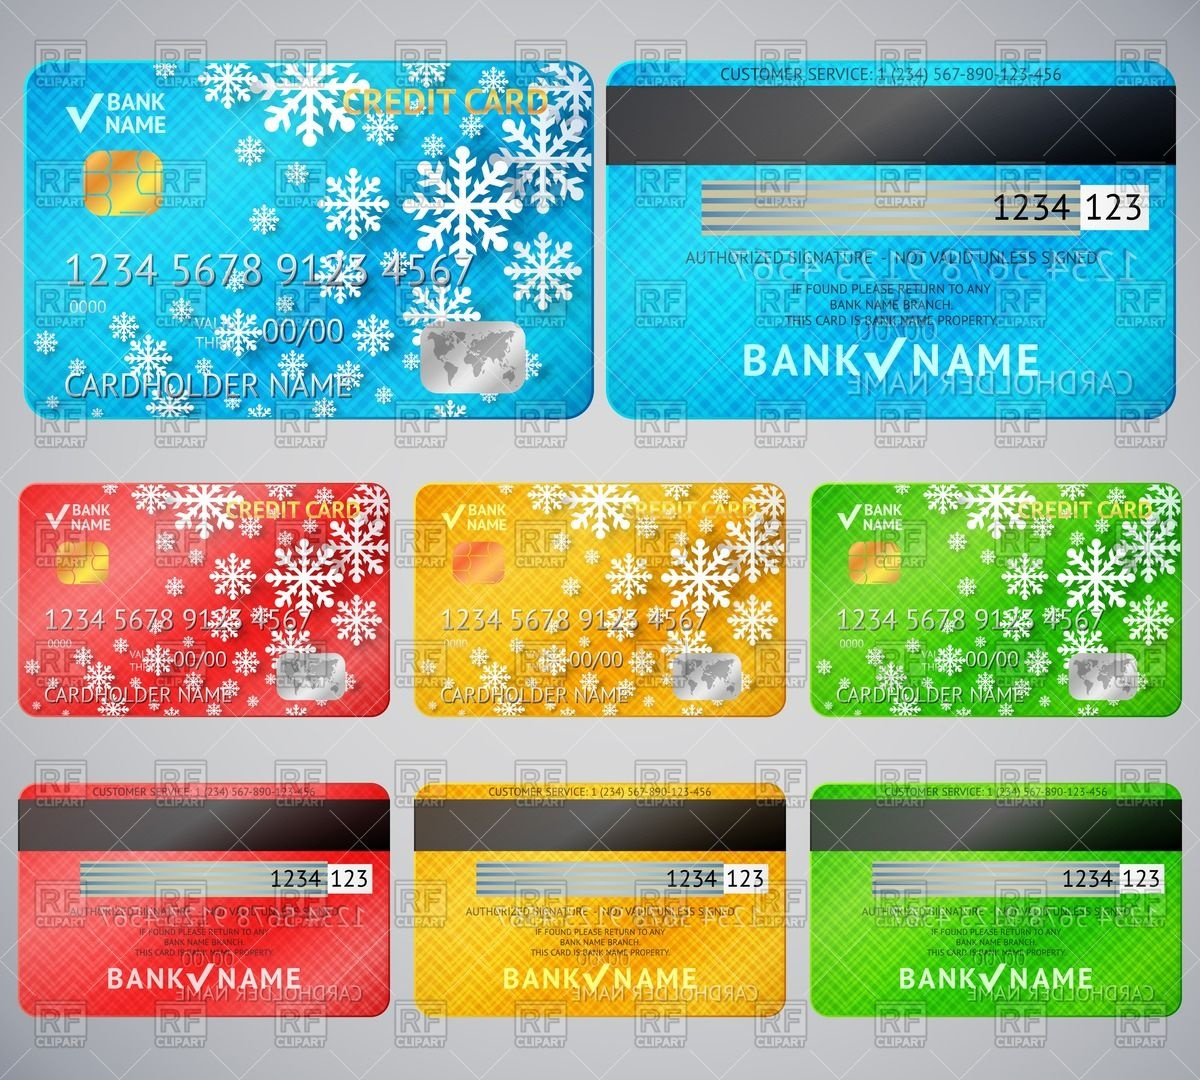 Chase bank clipart image transparent download Plastic debit card - templates of credit cards Vector Image #40170 ... image transparent download